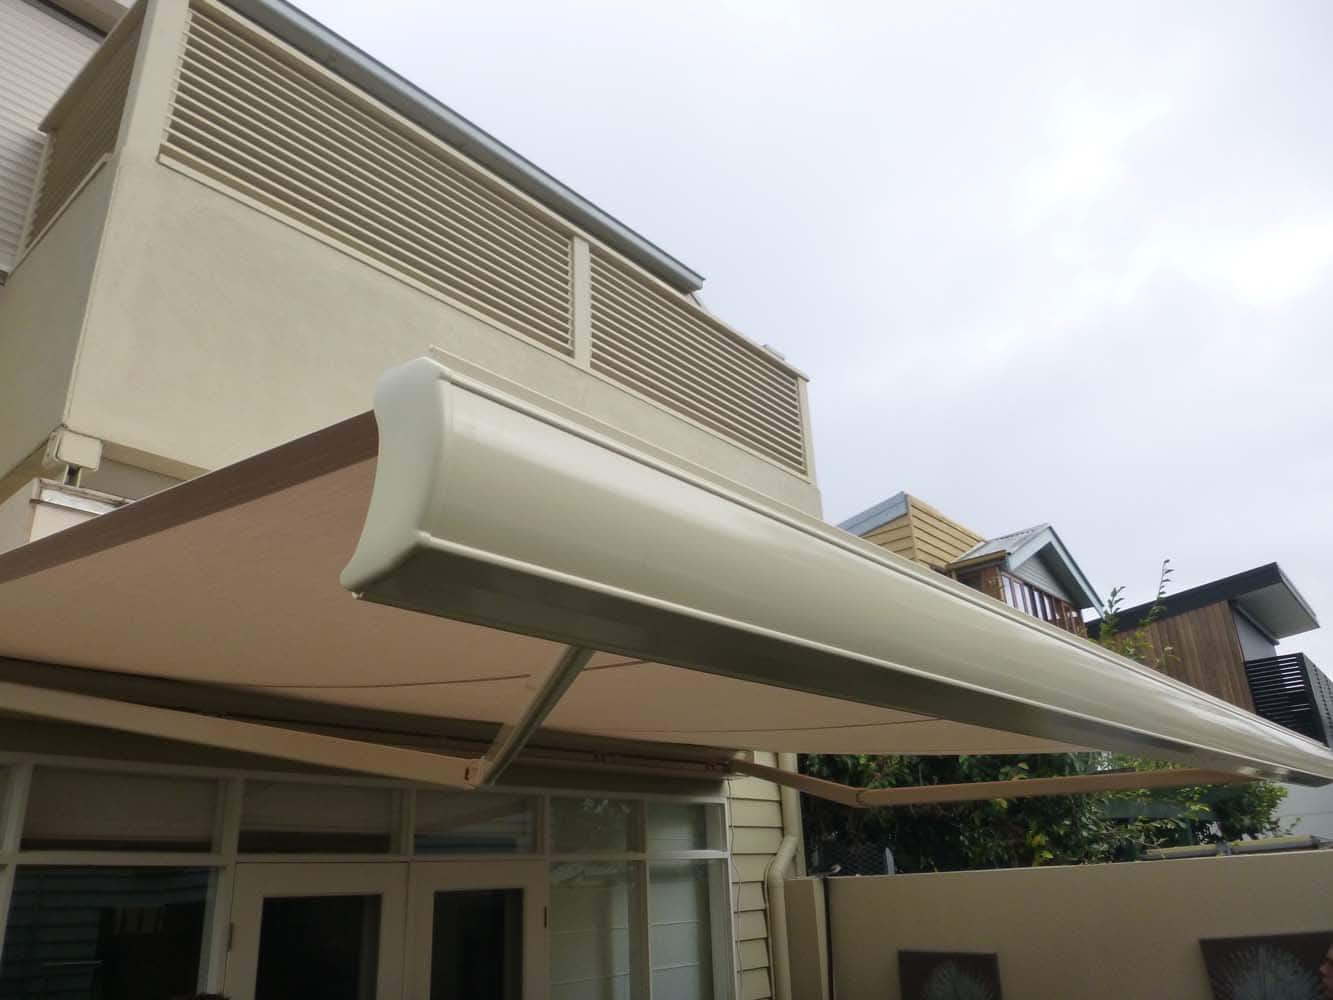 OUTDOOR AWNING 11